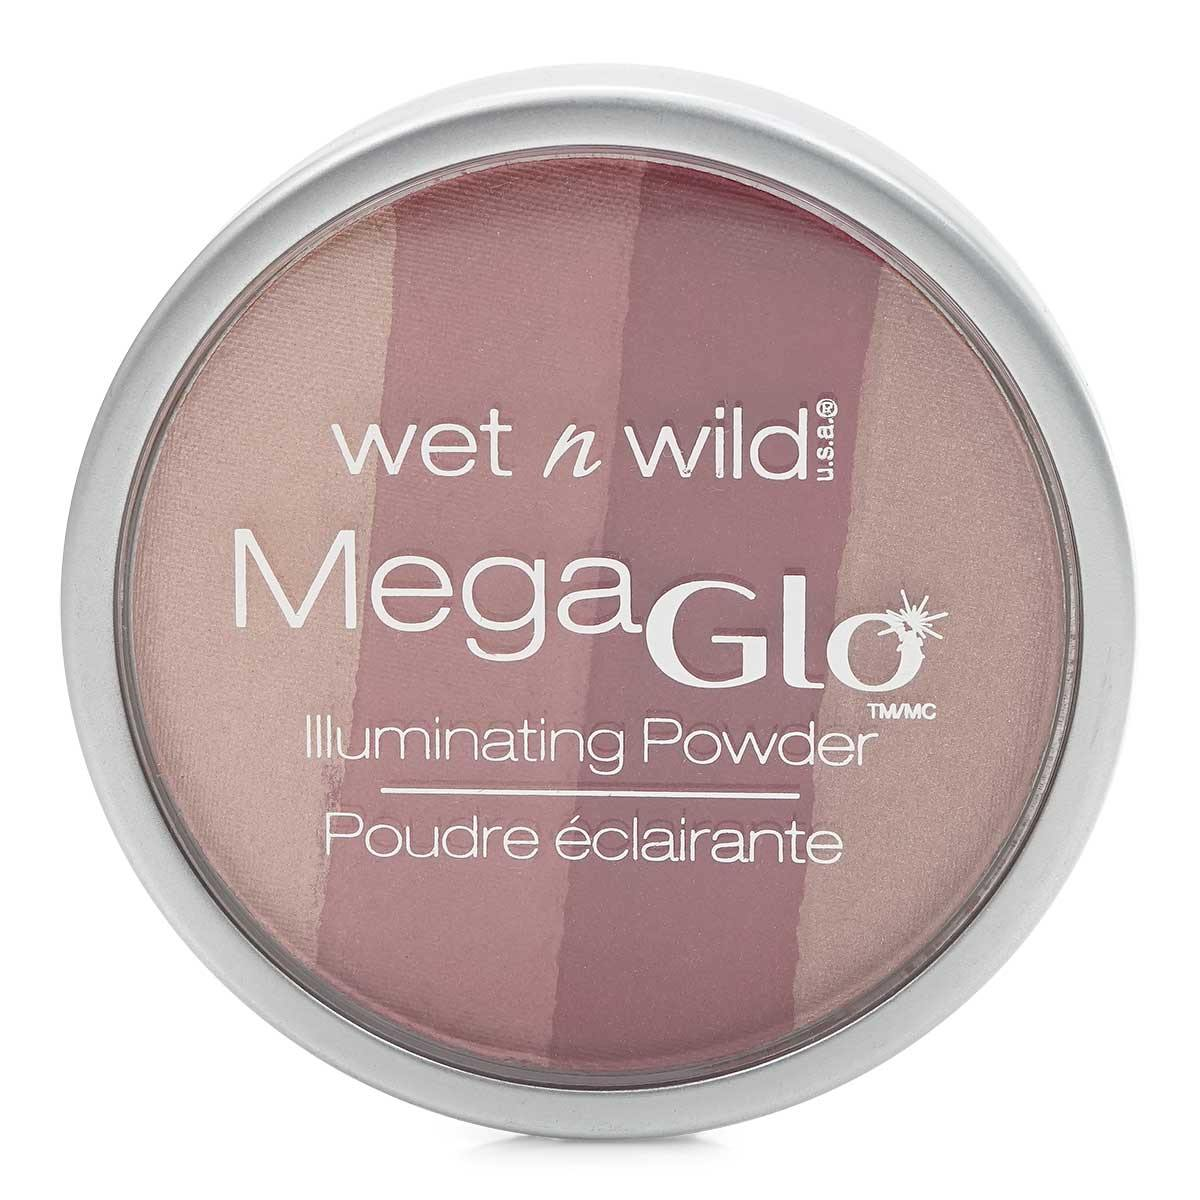 Wet n Wild MegaGlo Illuminating Powder (24/cs)